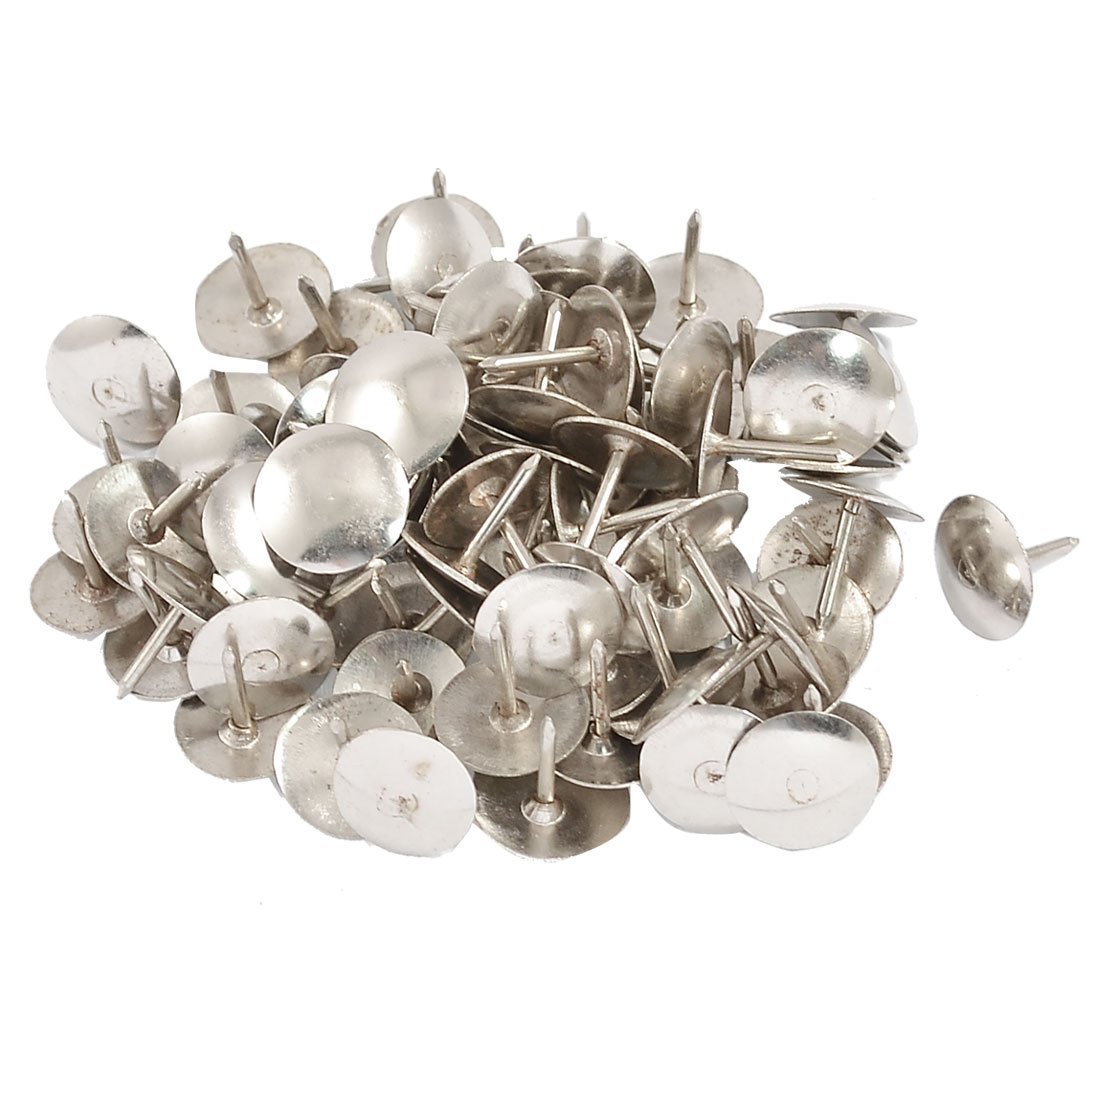 100 Pcs Silver Tone Notice Board Desk Thumb Tacks Pins uxcell a12051600ux0150